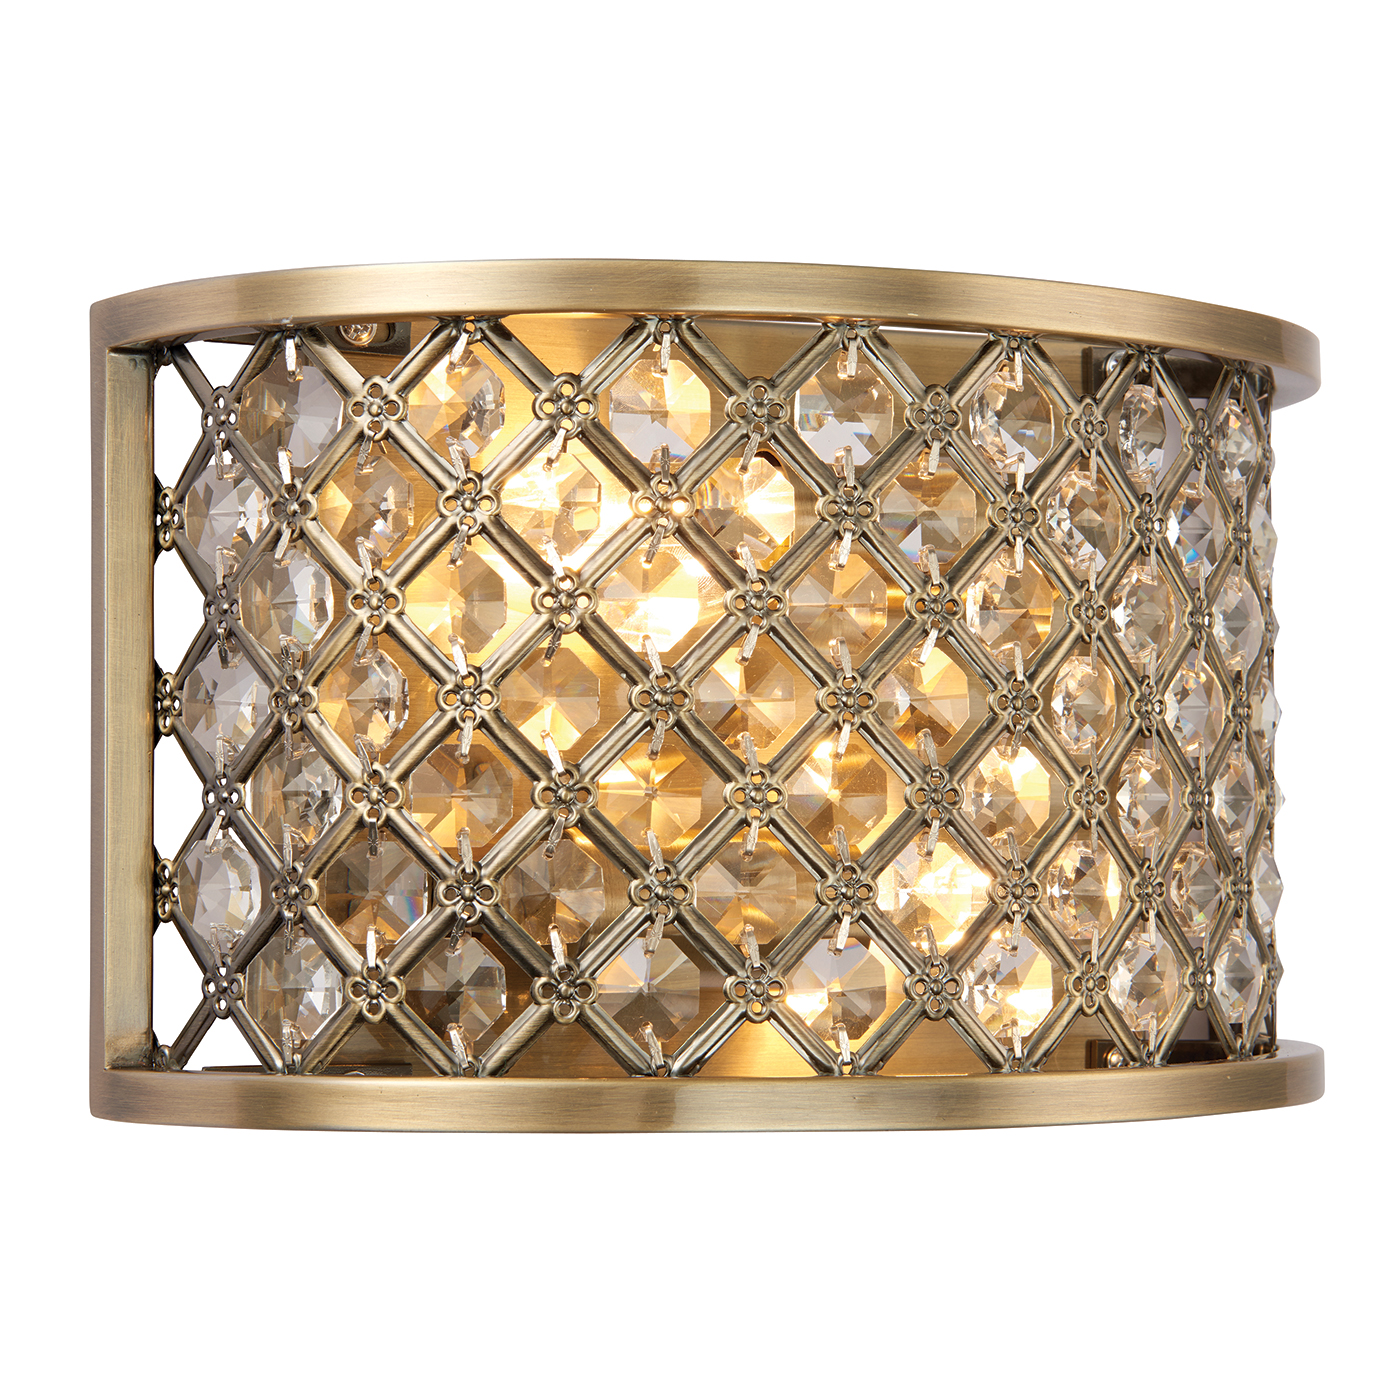 Endon Hudson 2lt wall light 60W Antique brass plate & clear crystal (k9) drops Thumbnail 1